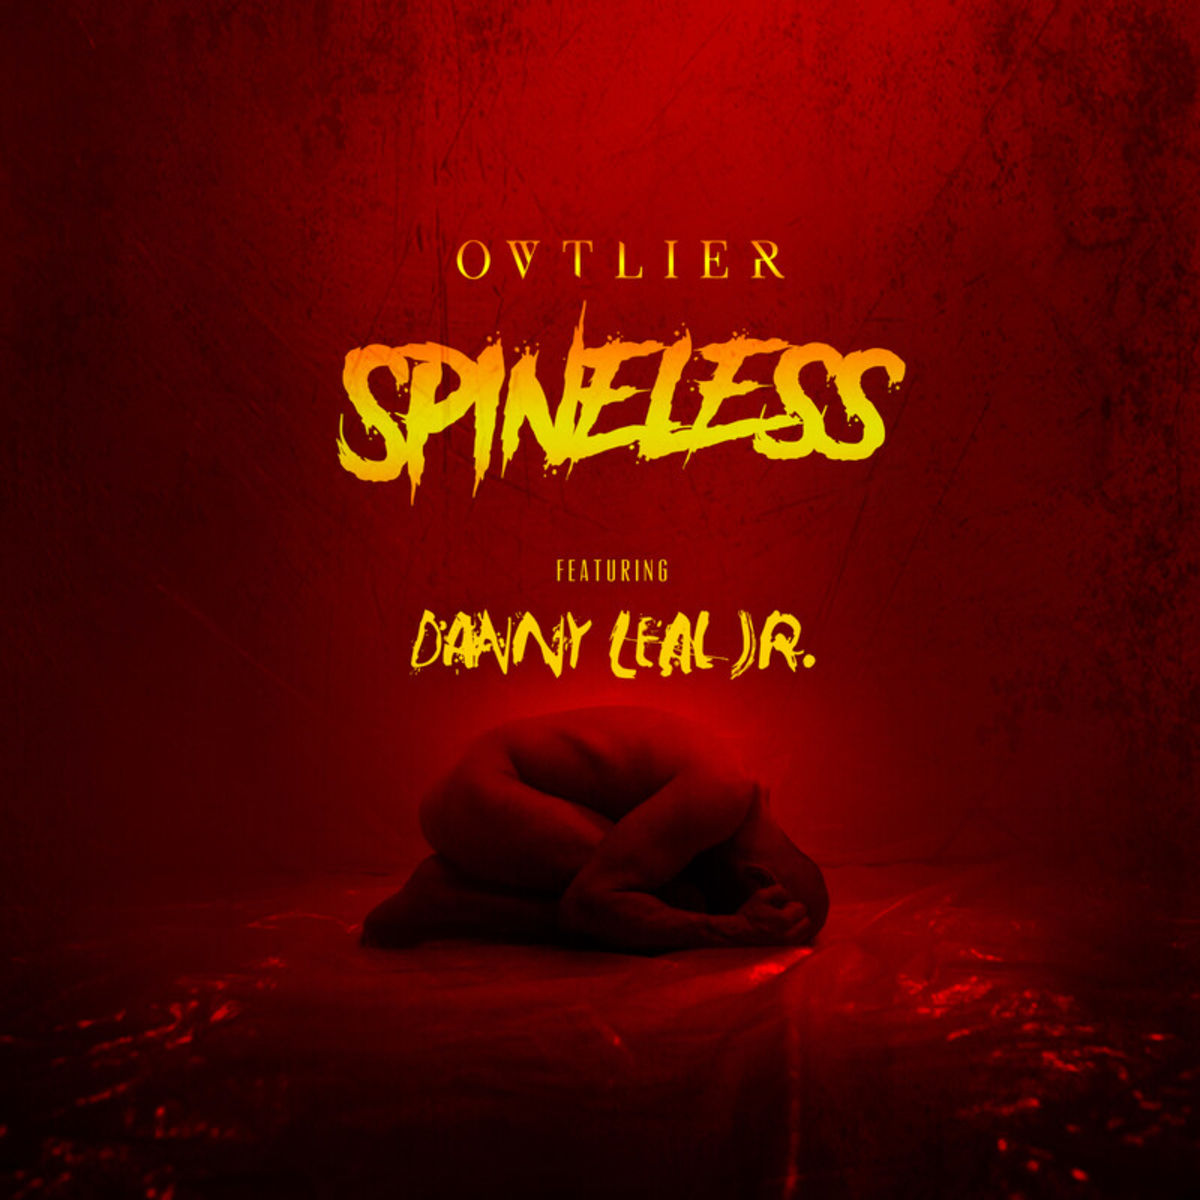 Ovtlier - Spineless [single] (2019)